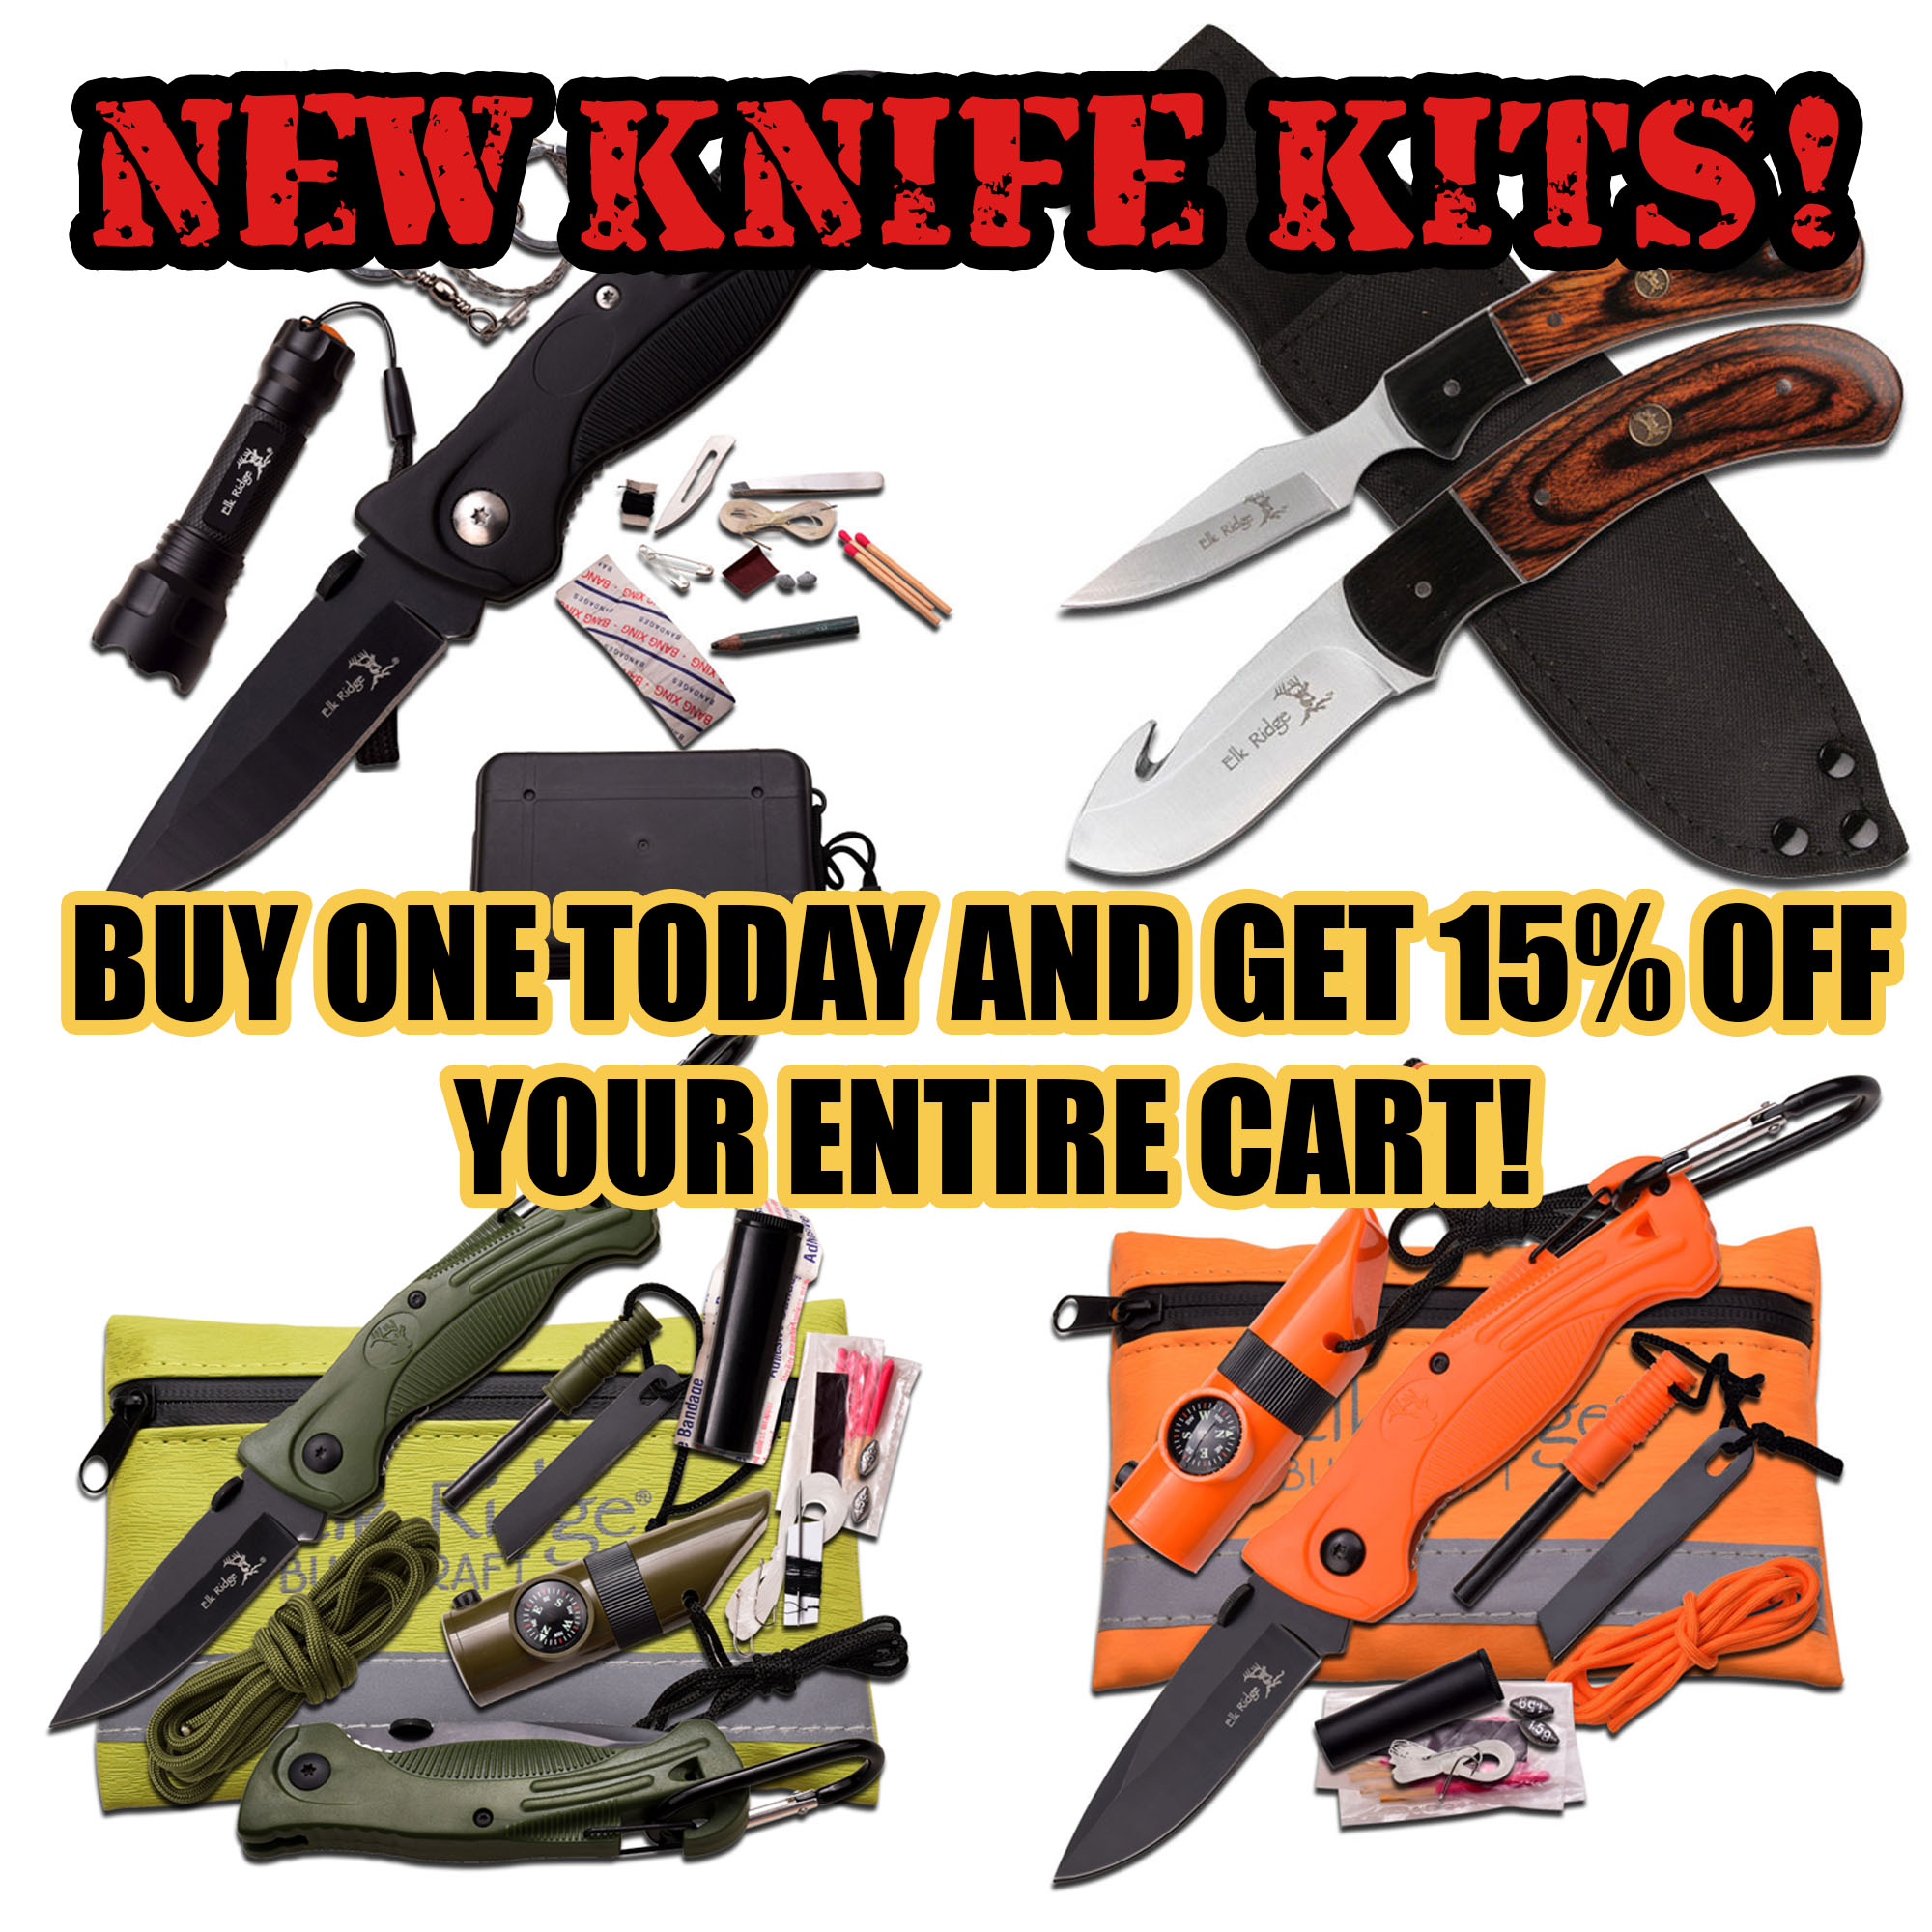 New Knife Kits